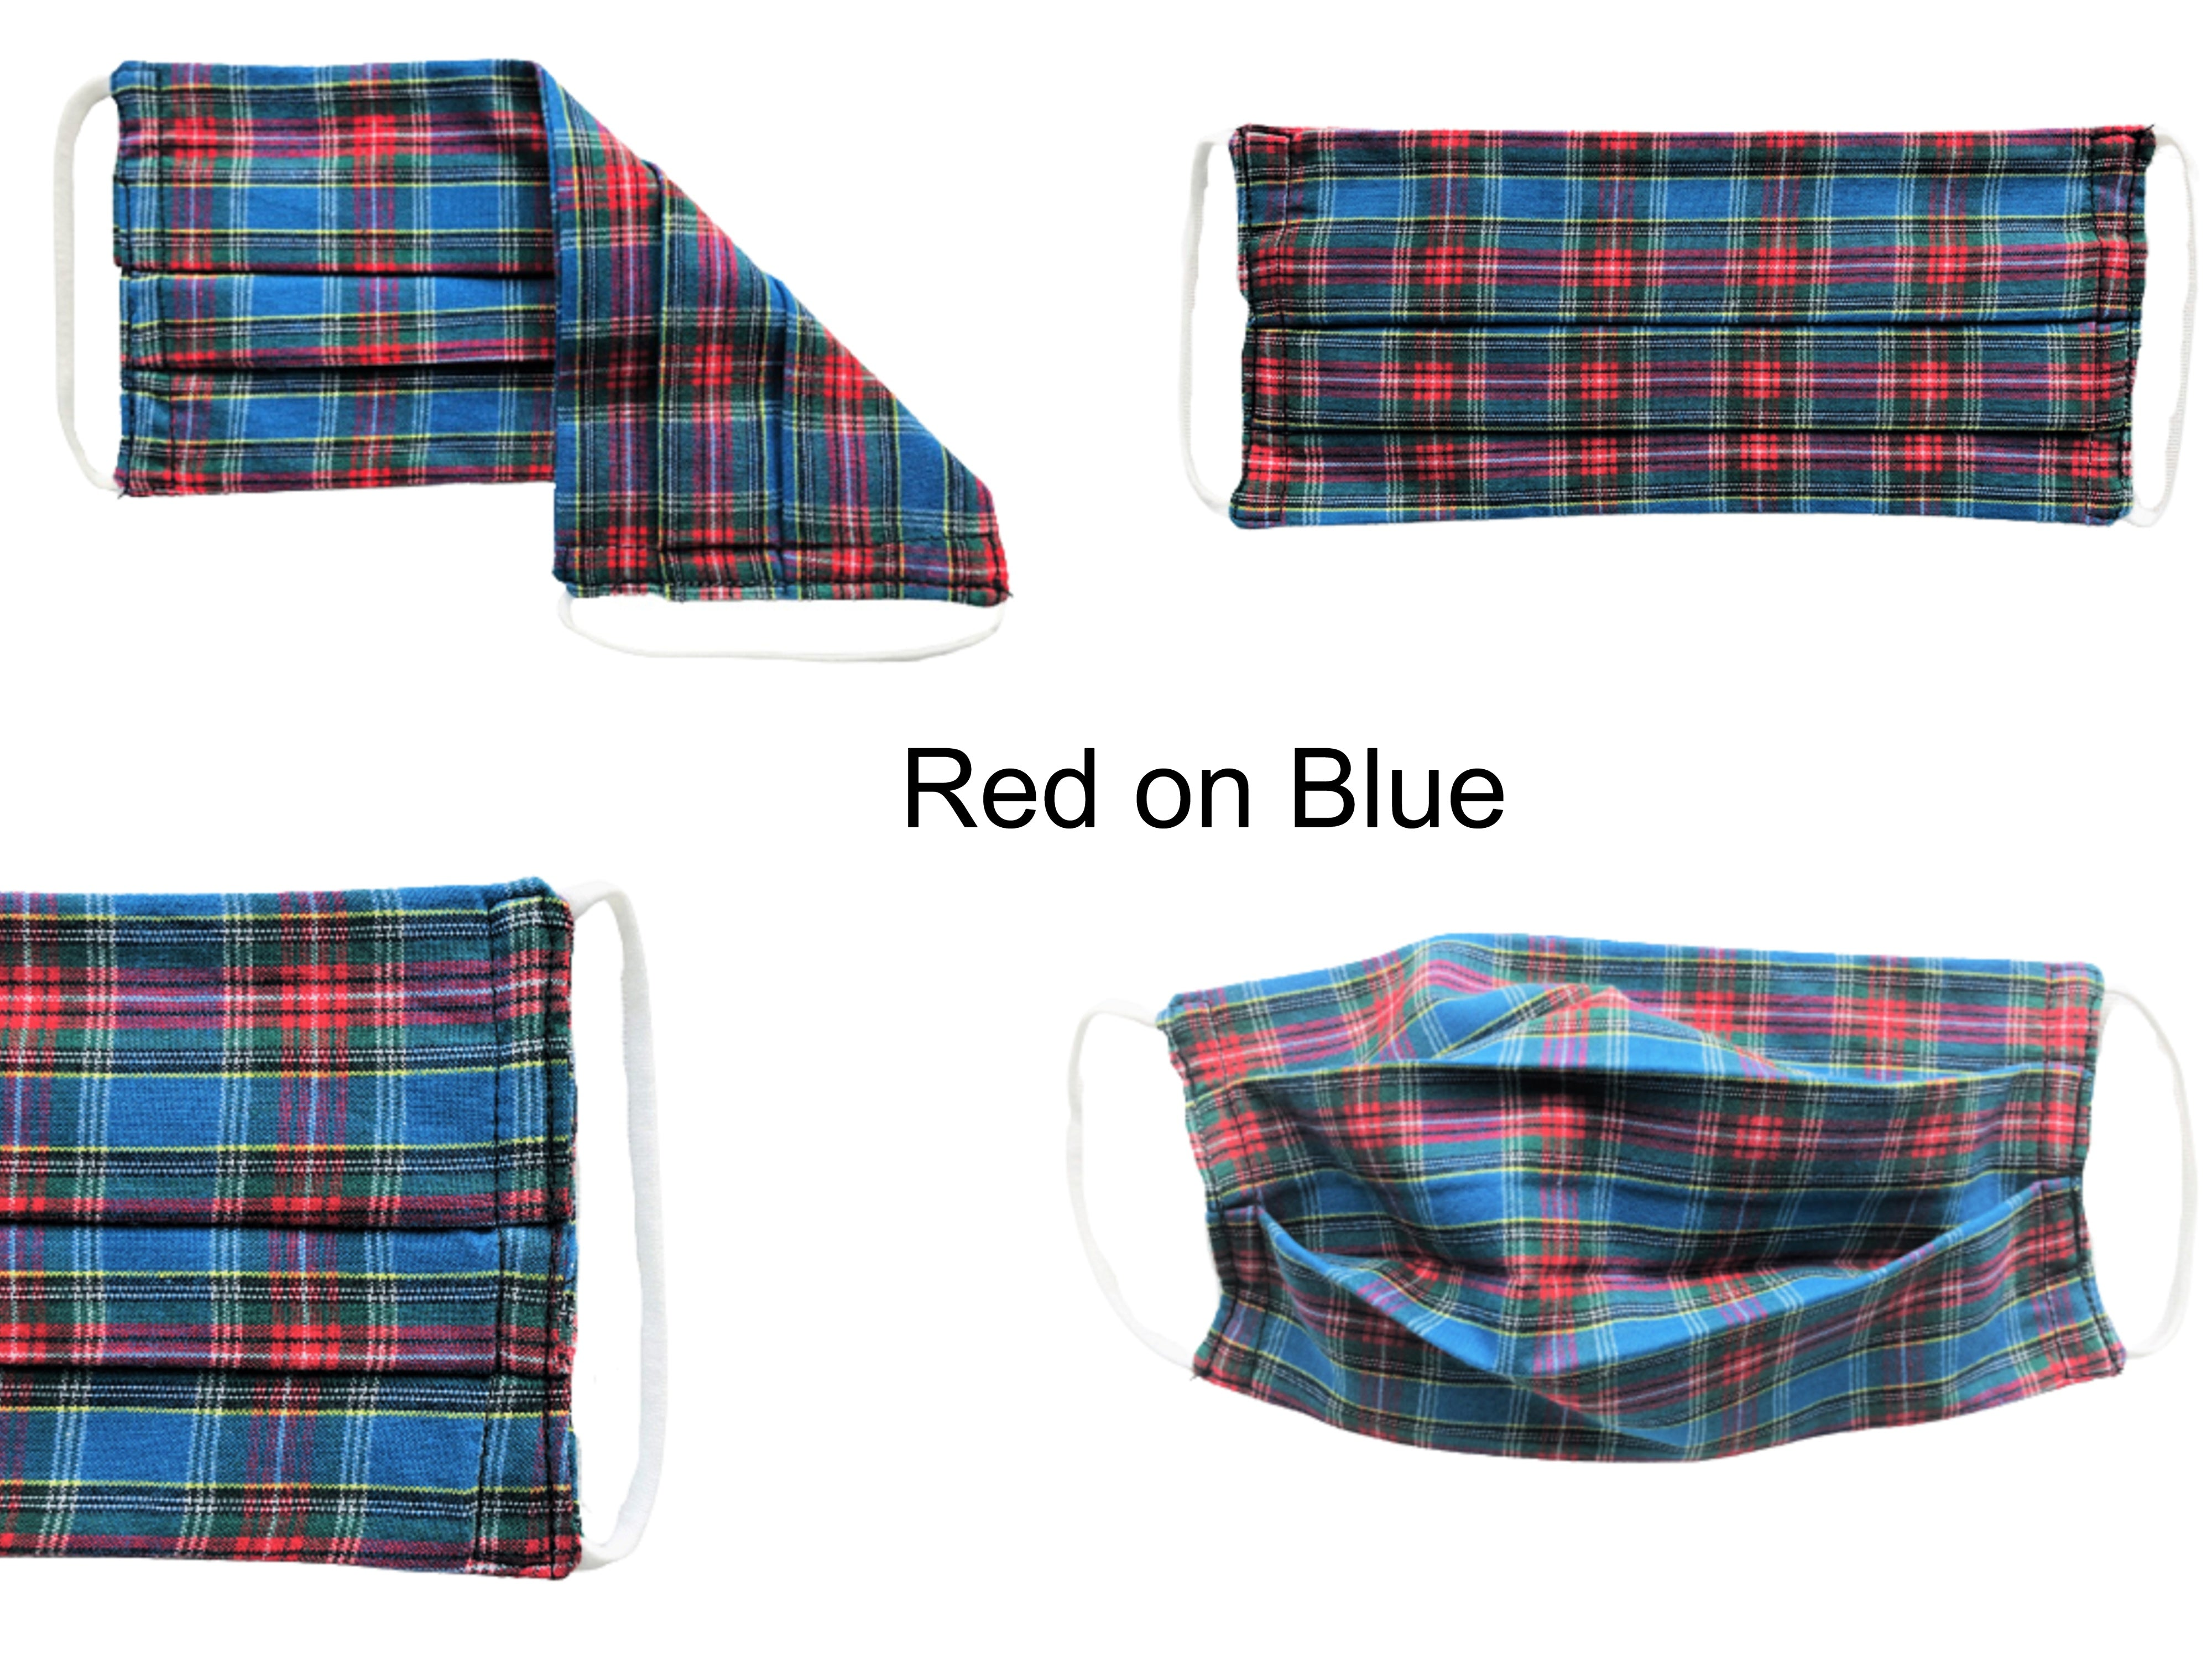 ComfyMasky Red on Blue Tartan Pleated Premium Cotton Face Masks Collage